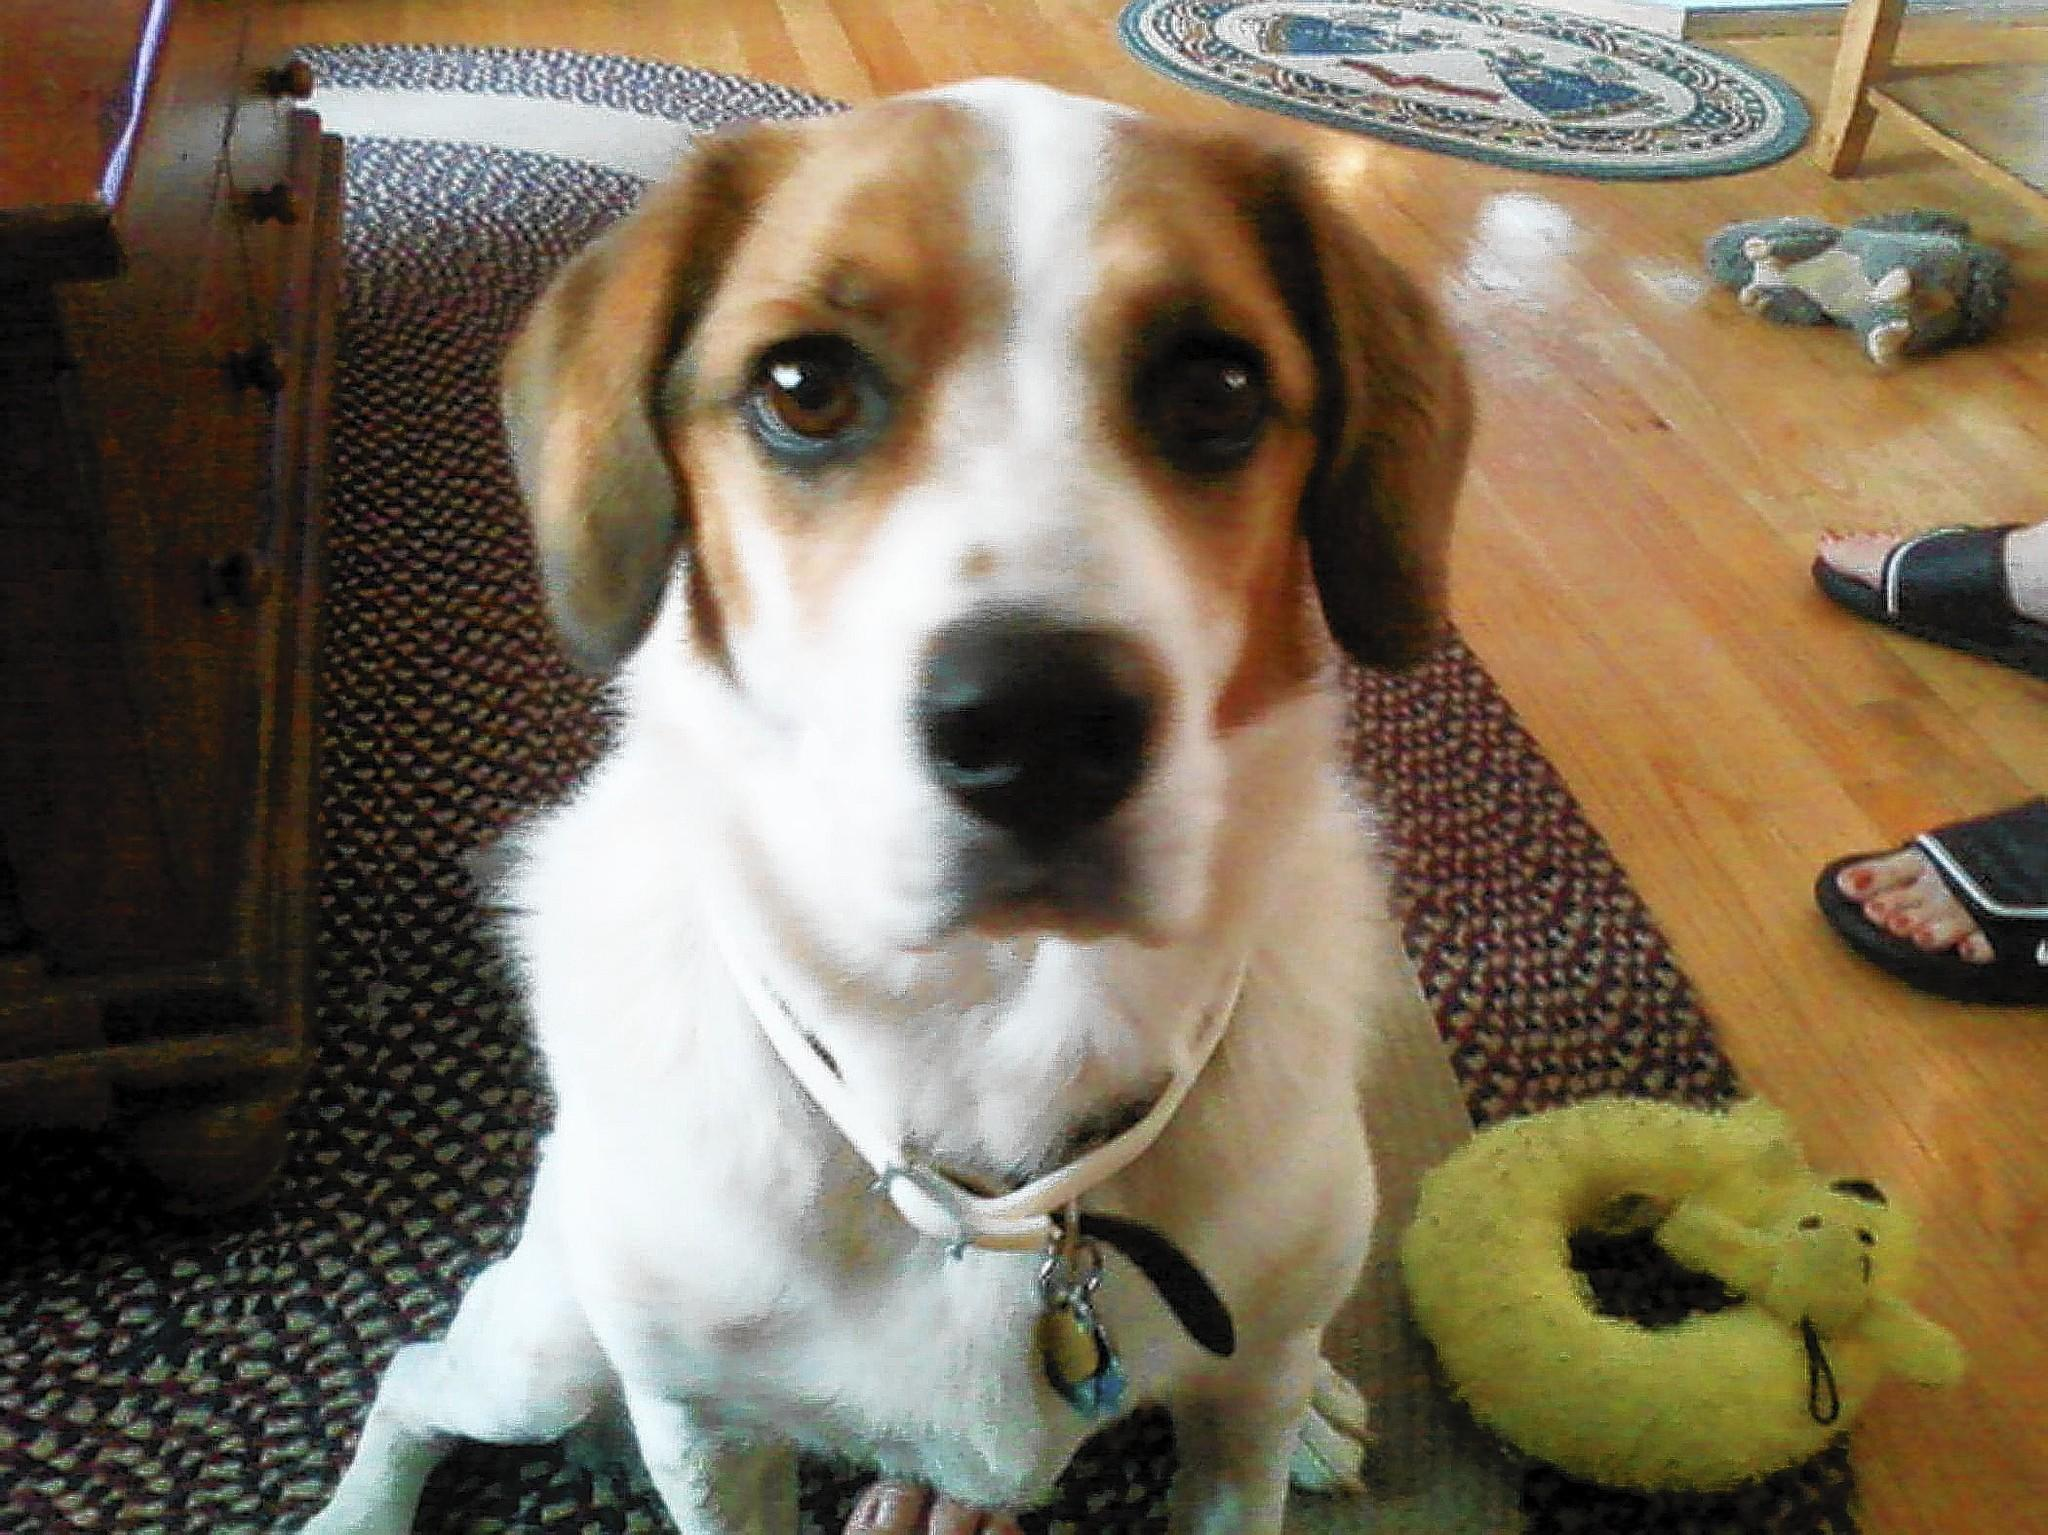 Zoe, a 7 year old Beagle/Spaniel/Russell mix, owned and loved by Tom and Rose Brauchle, 55 and 54, of Salisbury Township.